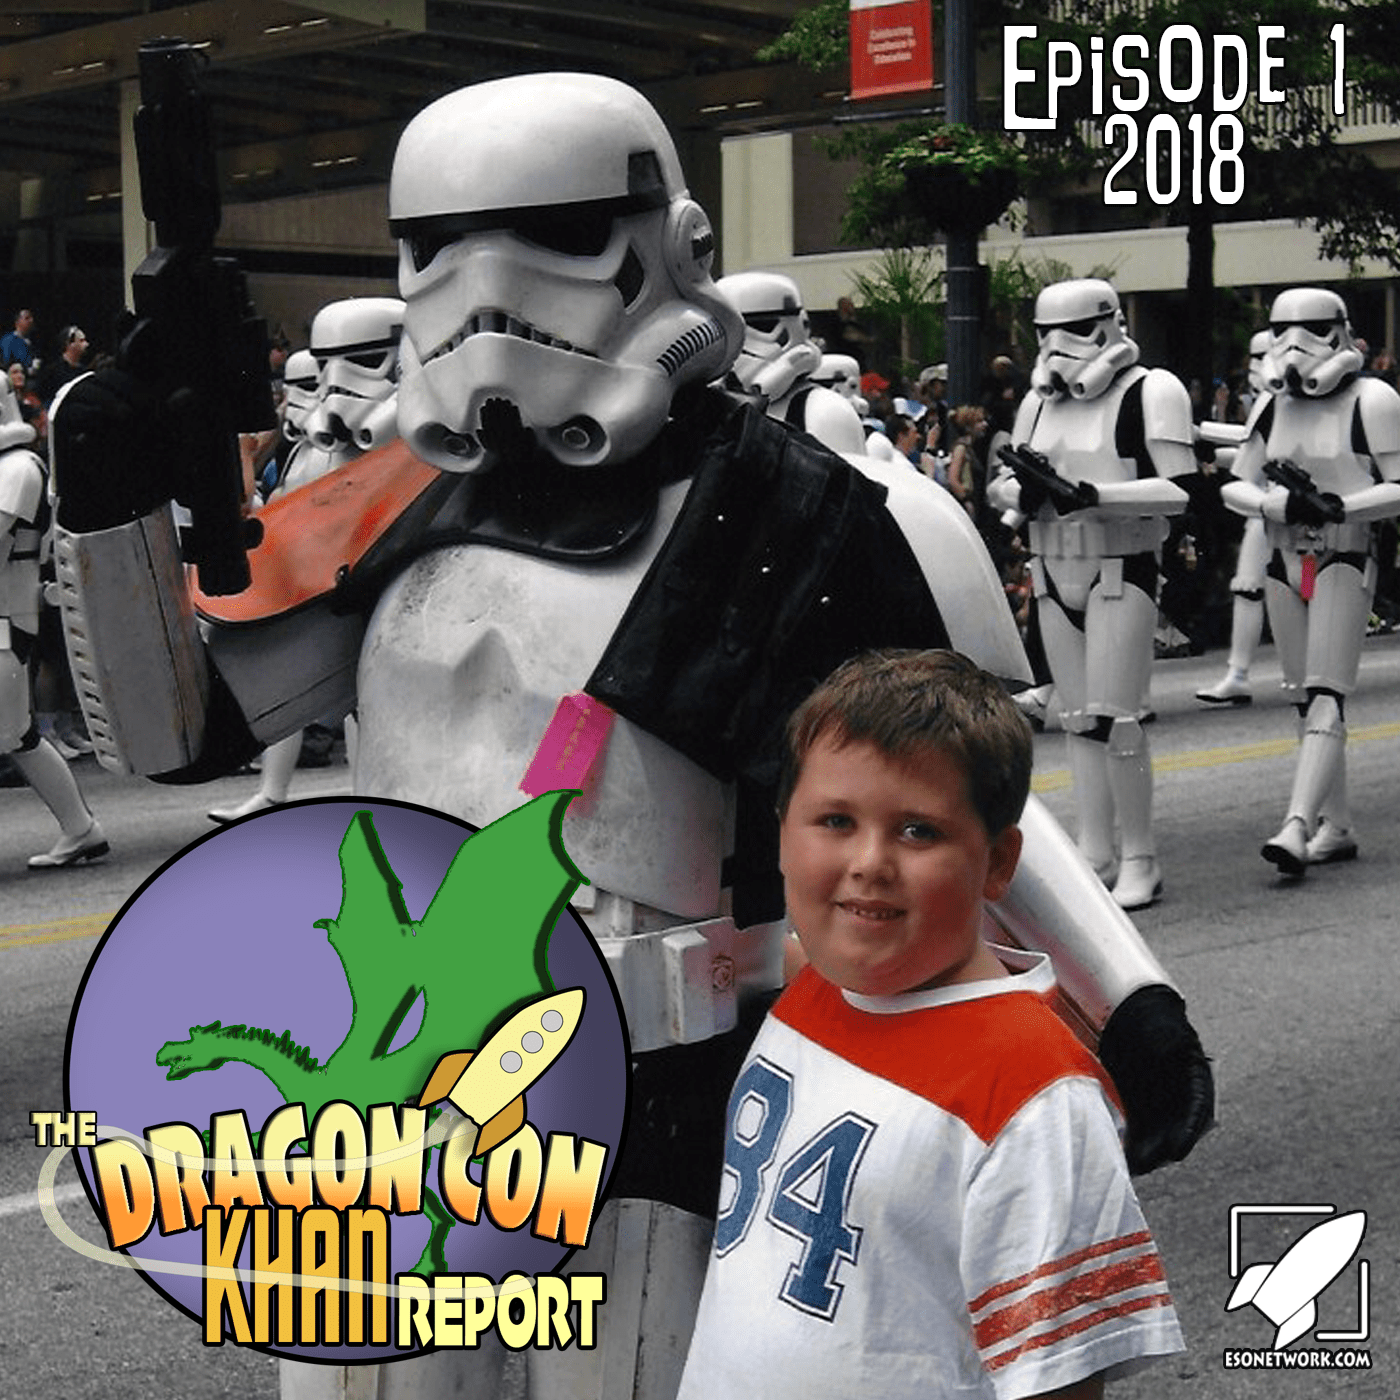 The Dragon Con Khan Report 2018 Ep 1